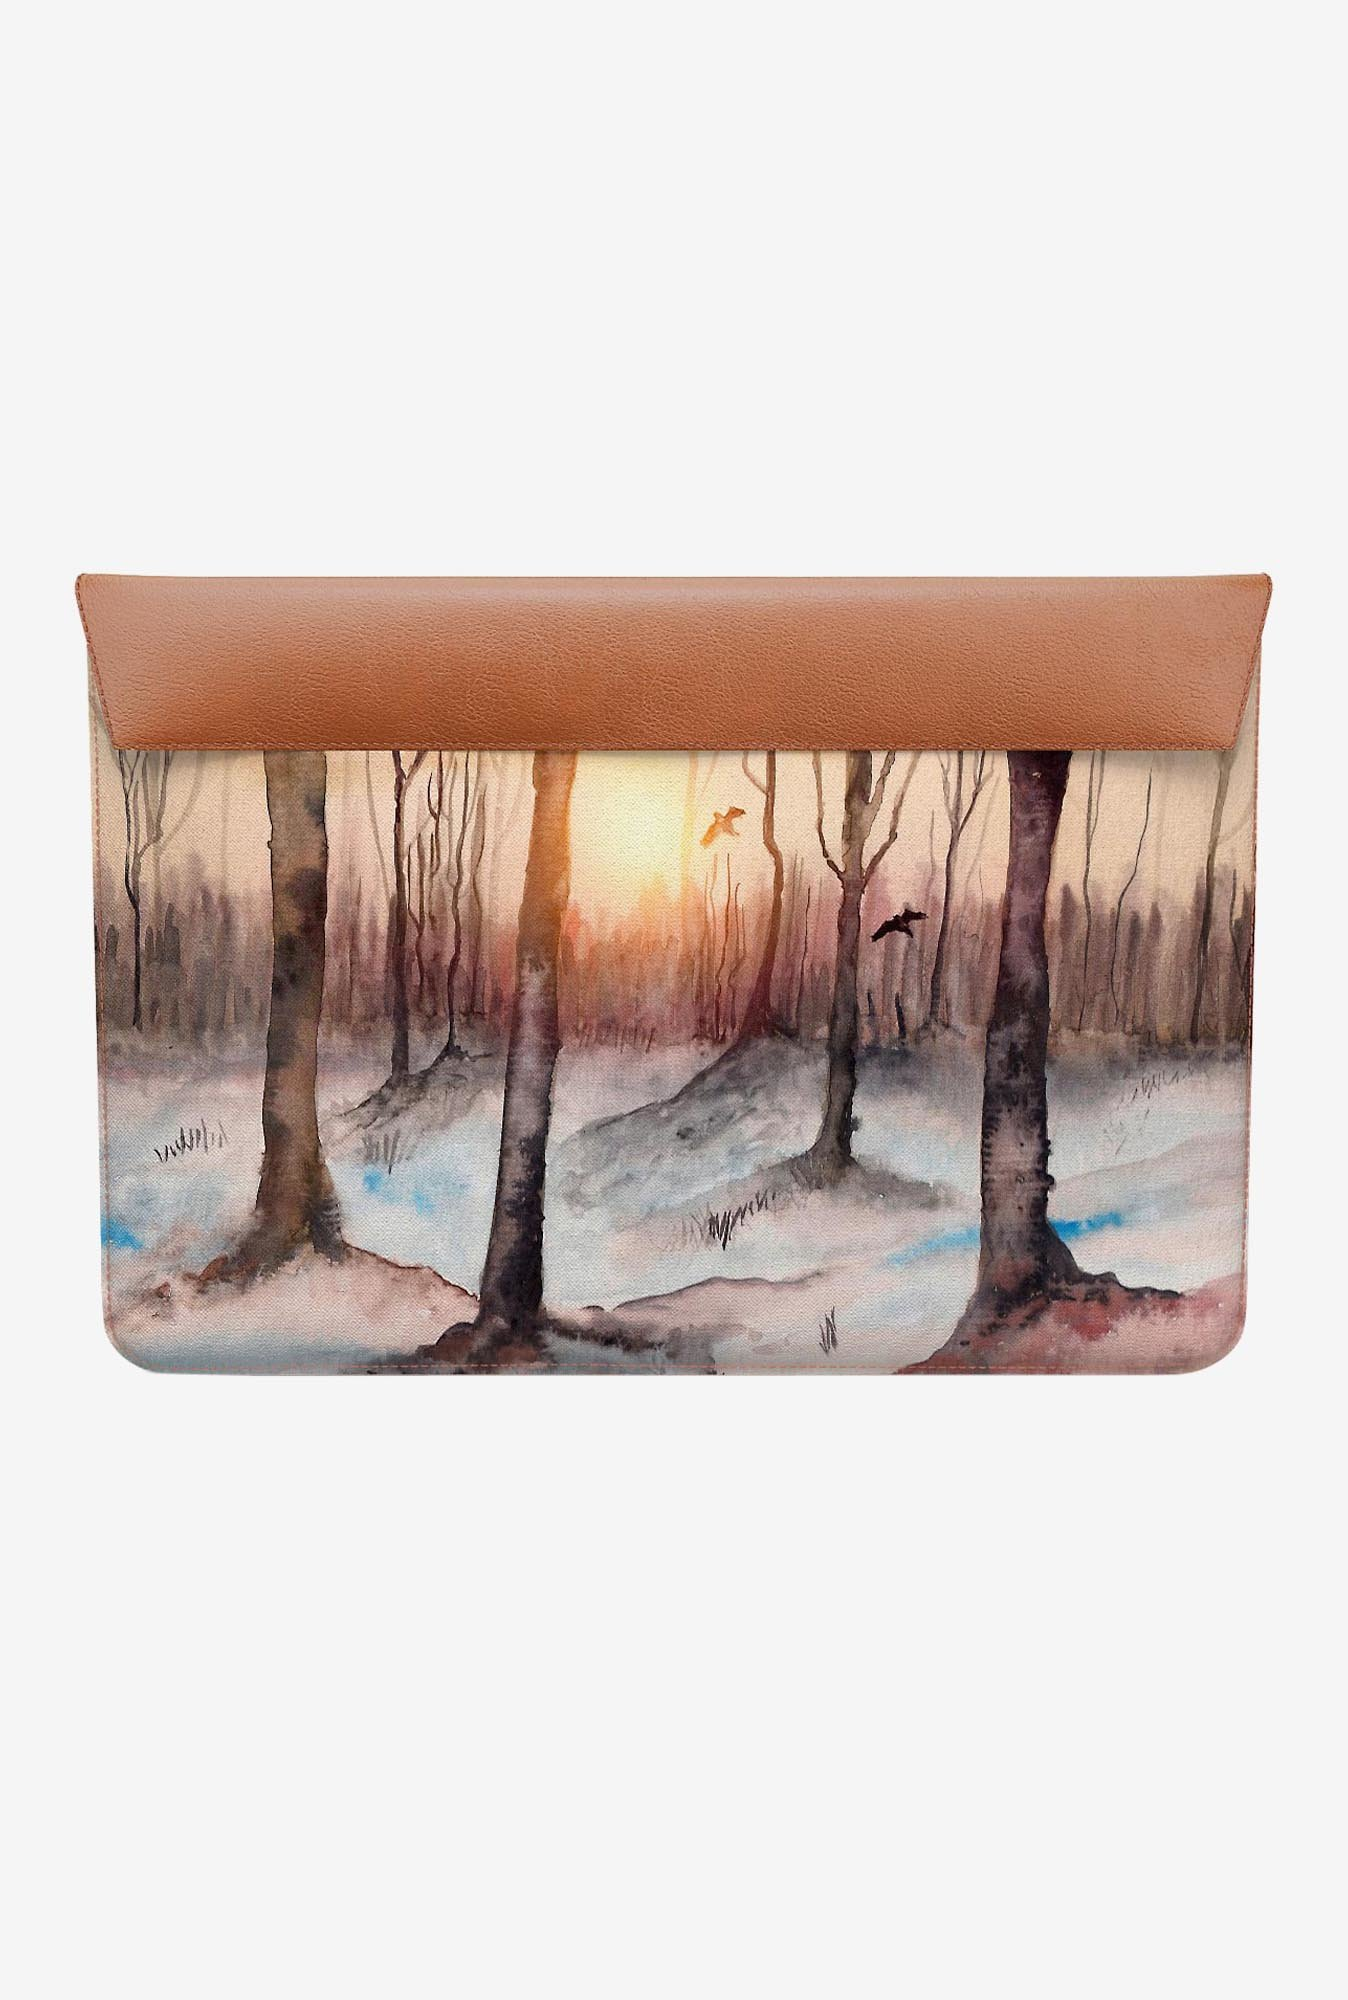 DailyObjects Sunrise in Woods MacBook Pro 15 Envelope Sleeve